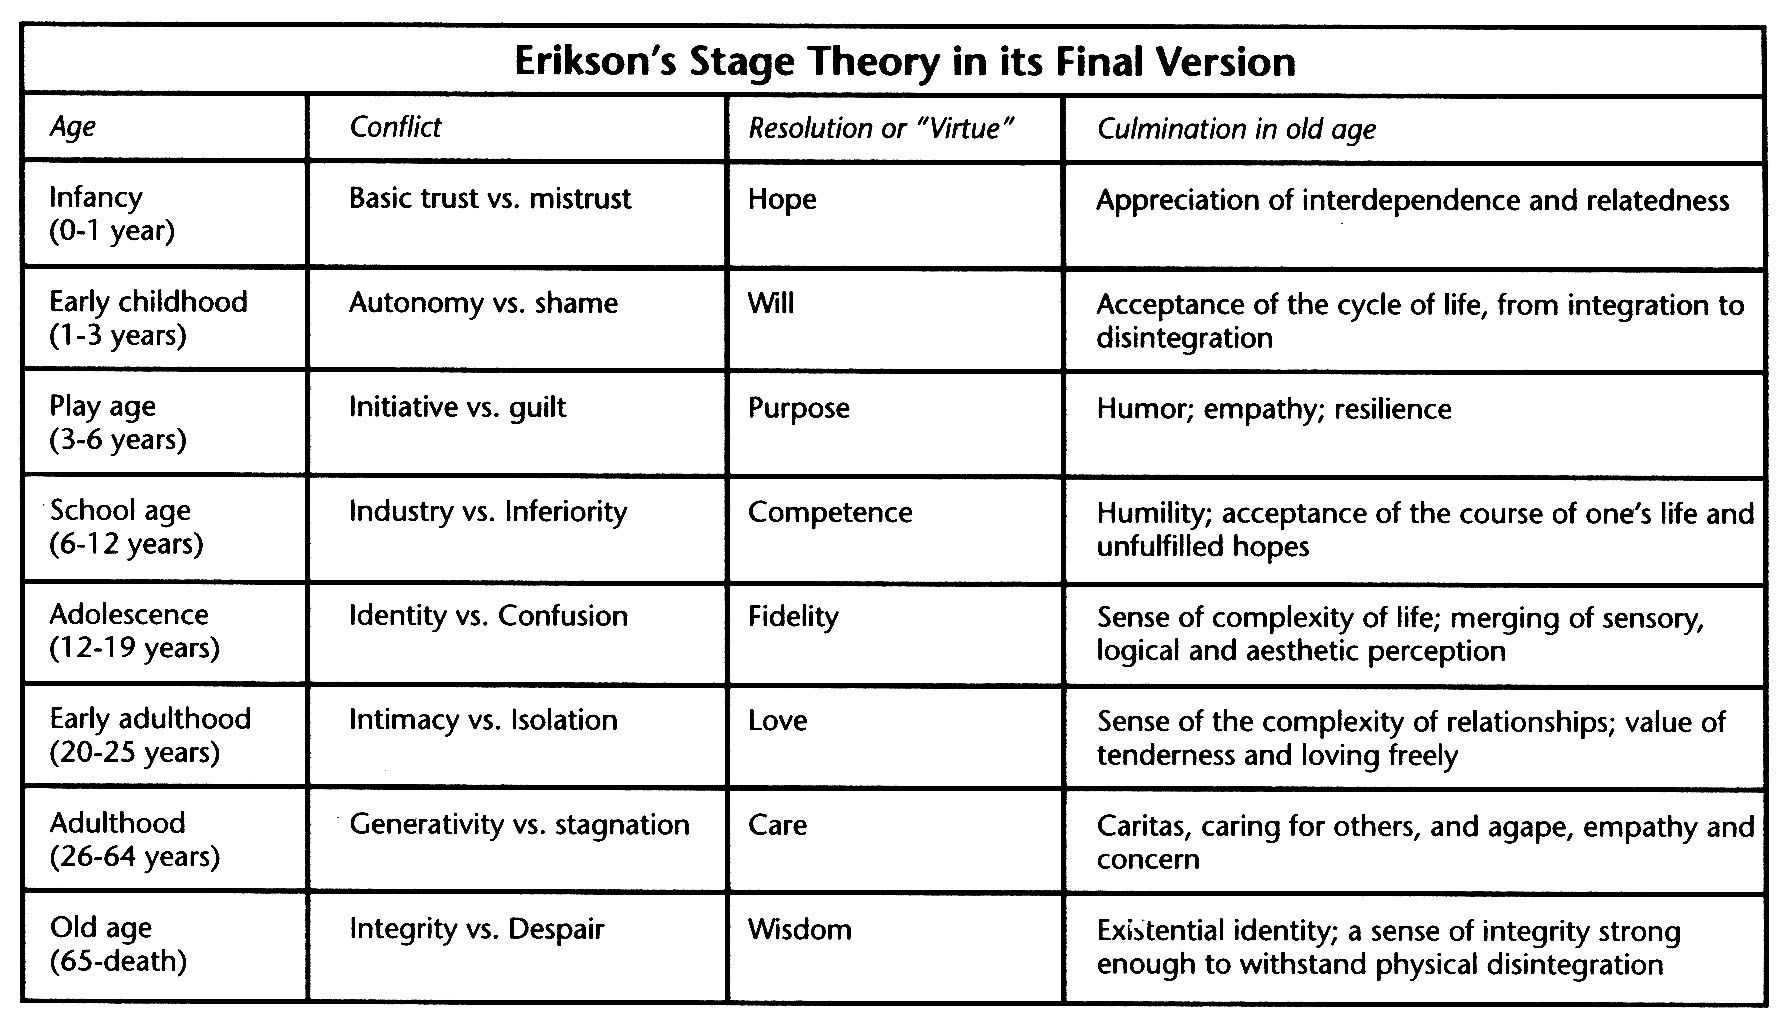 bandura vs erikson • nature vs nurture debate  • erikson's theory • suggests development occurs in a series of eight  • bandura: concept of self.